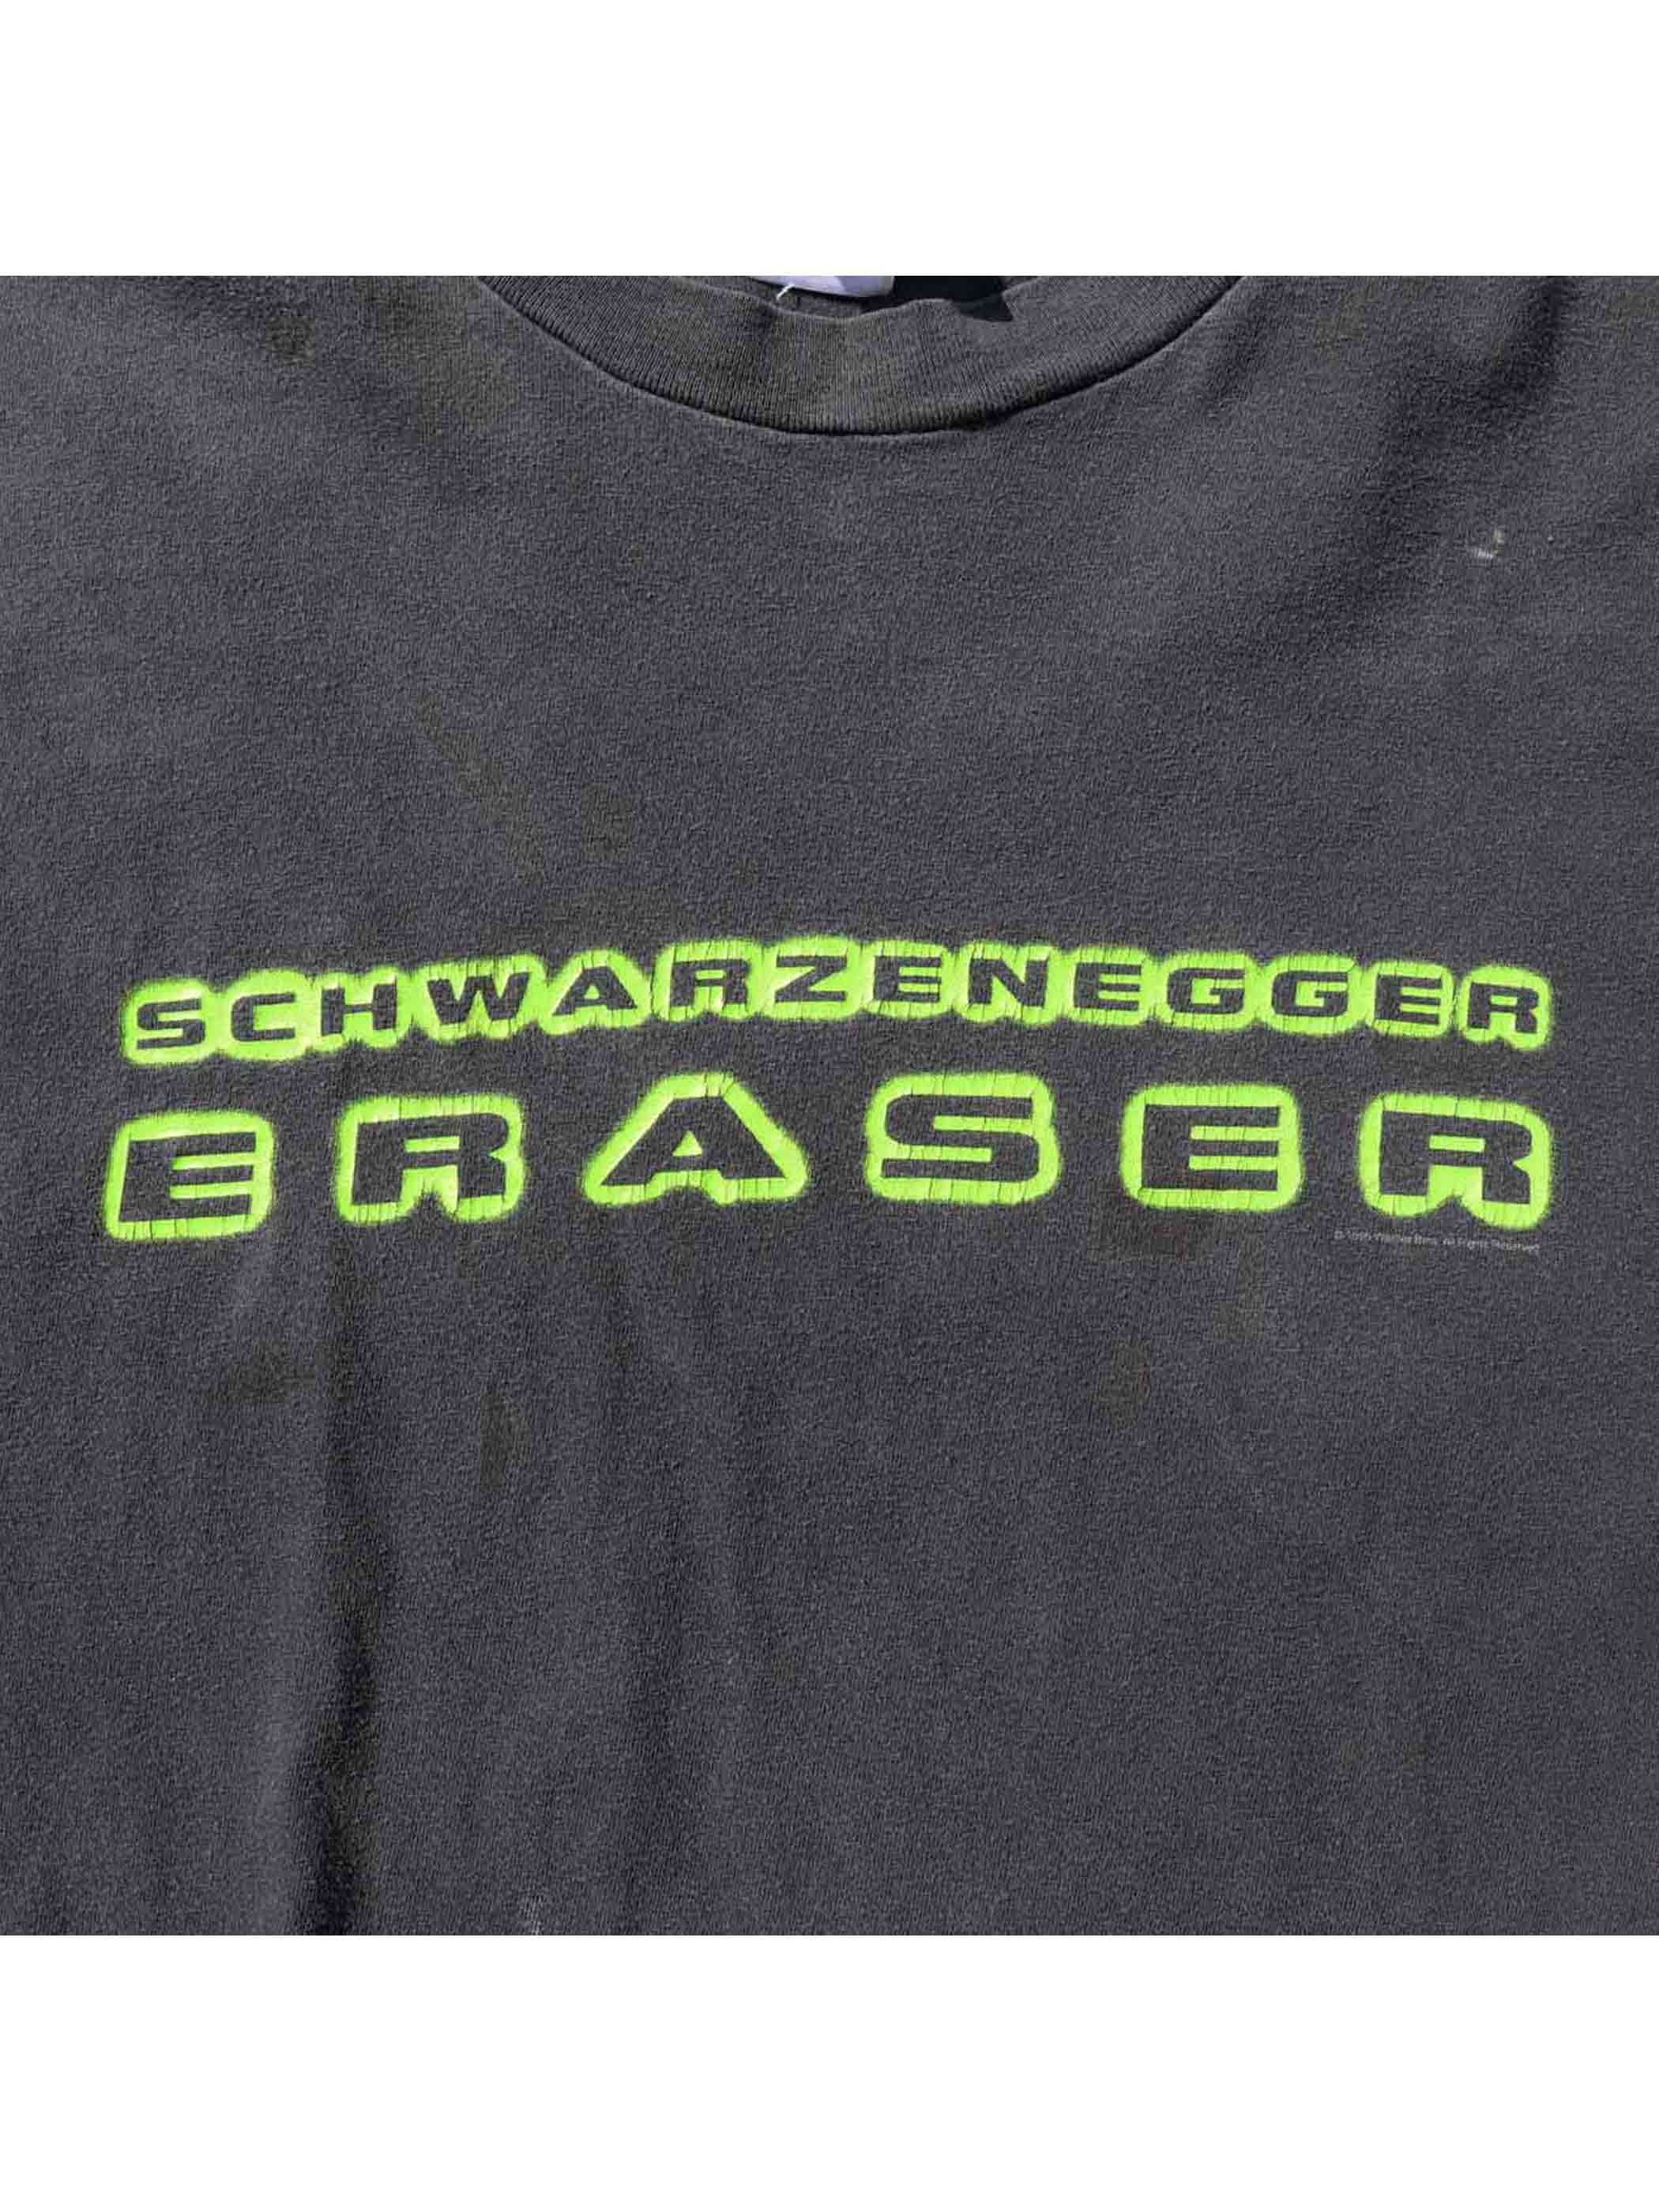 90's ERASER Movie T-Shirt [XL]